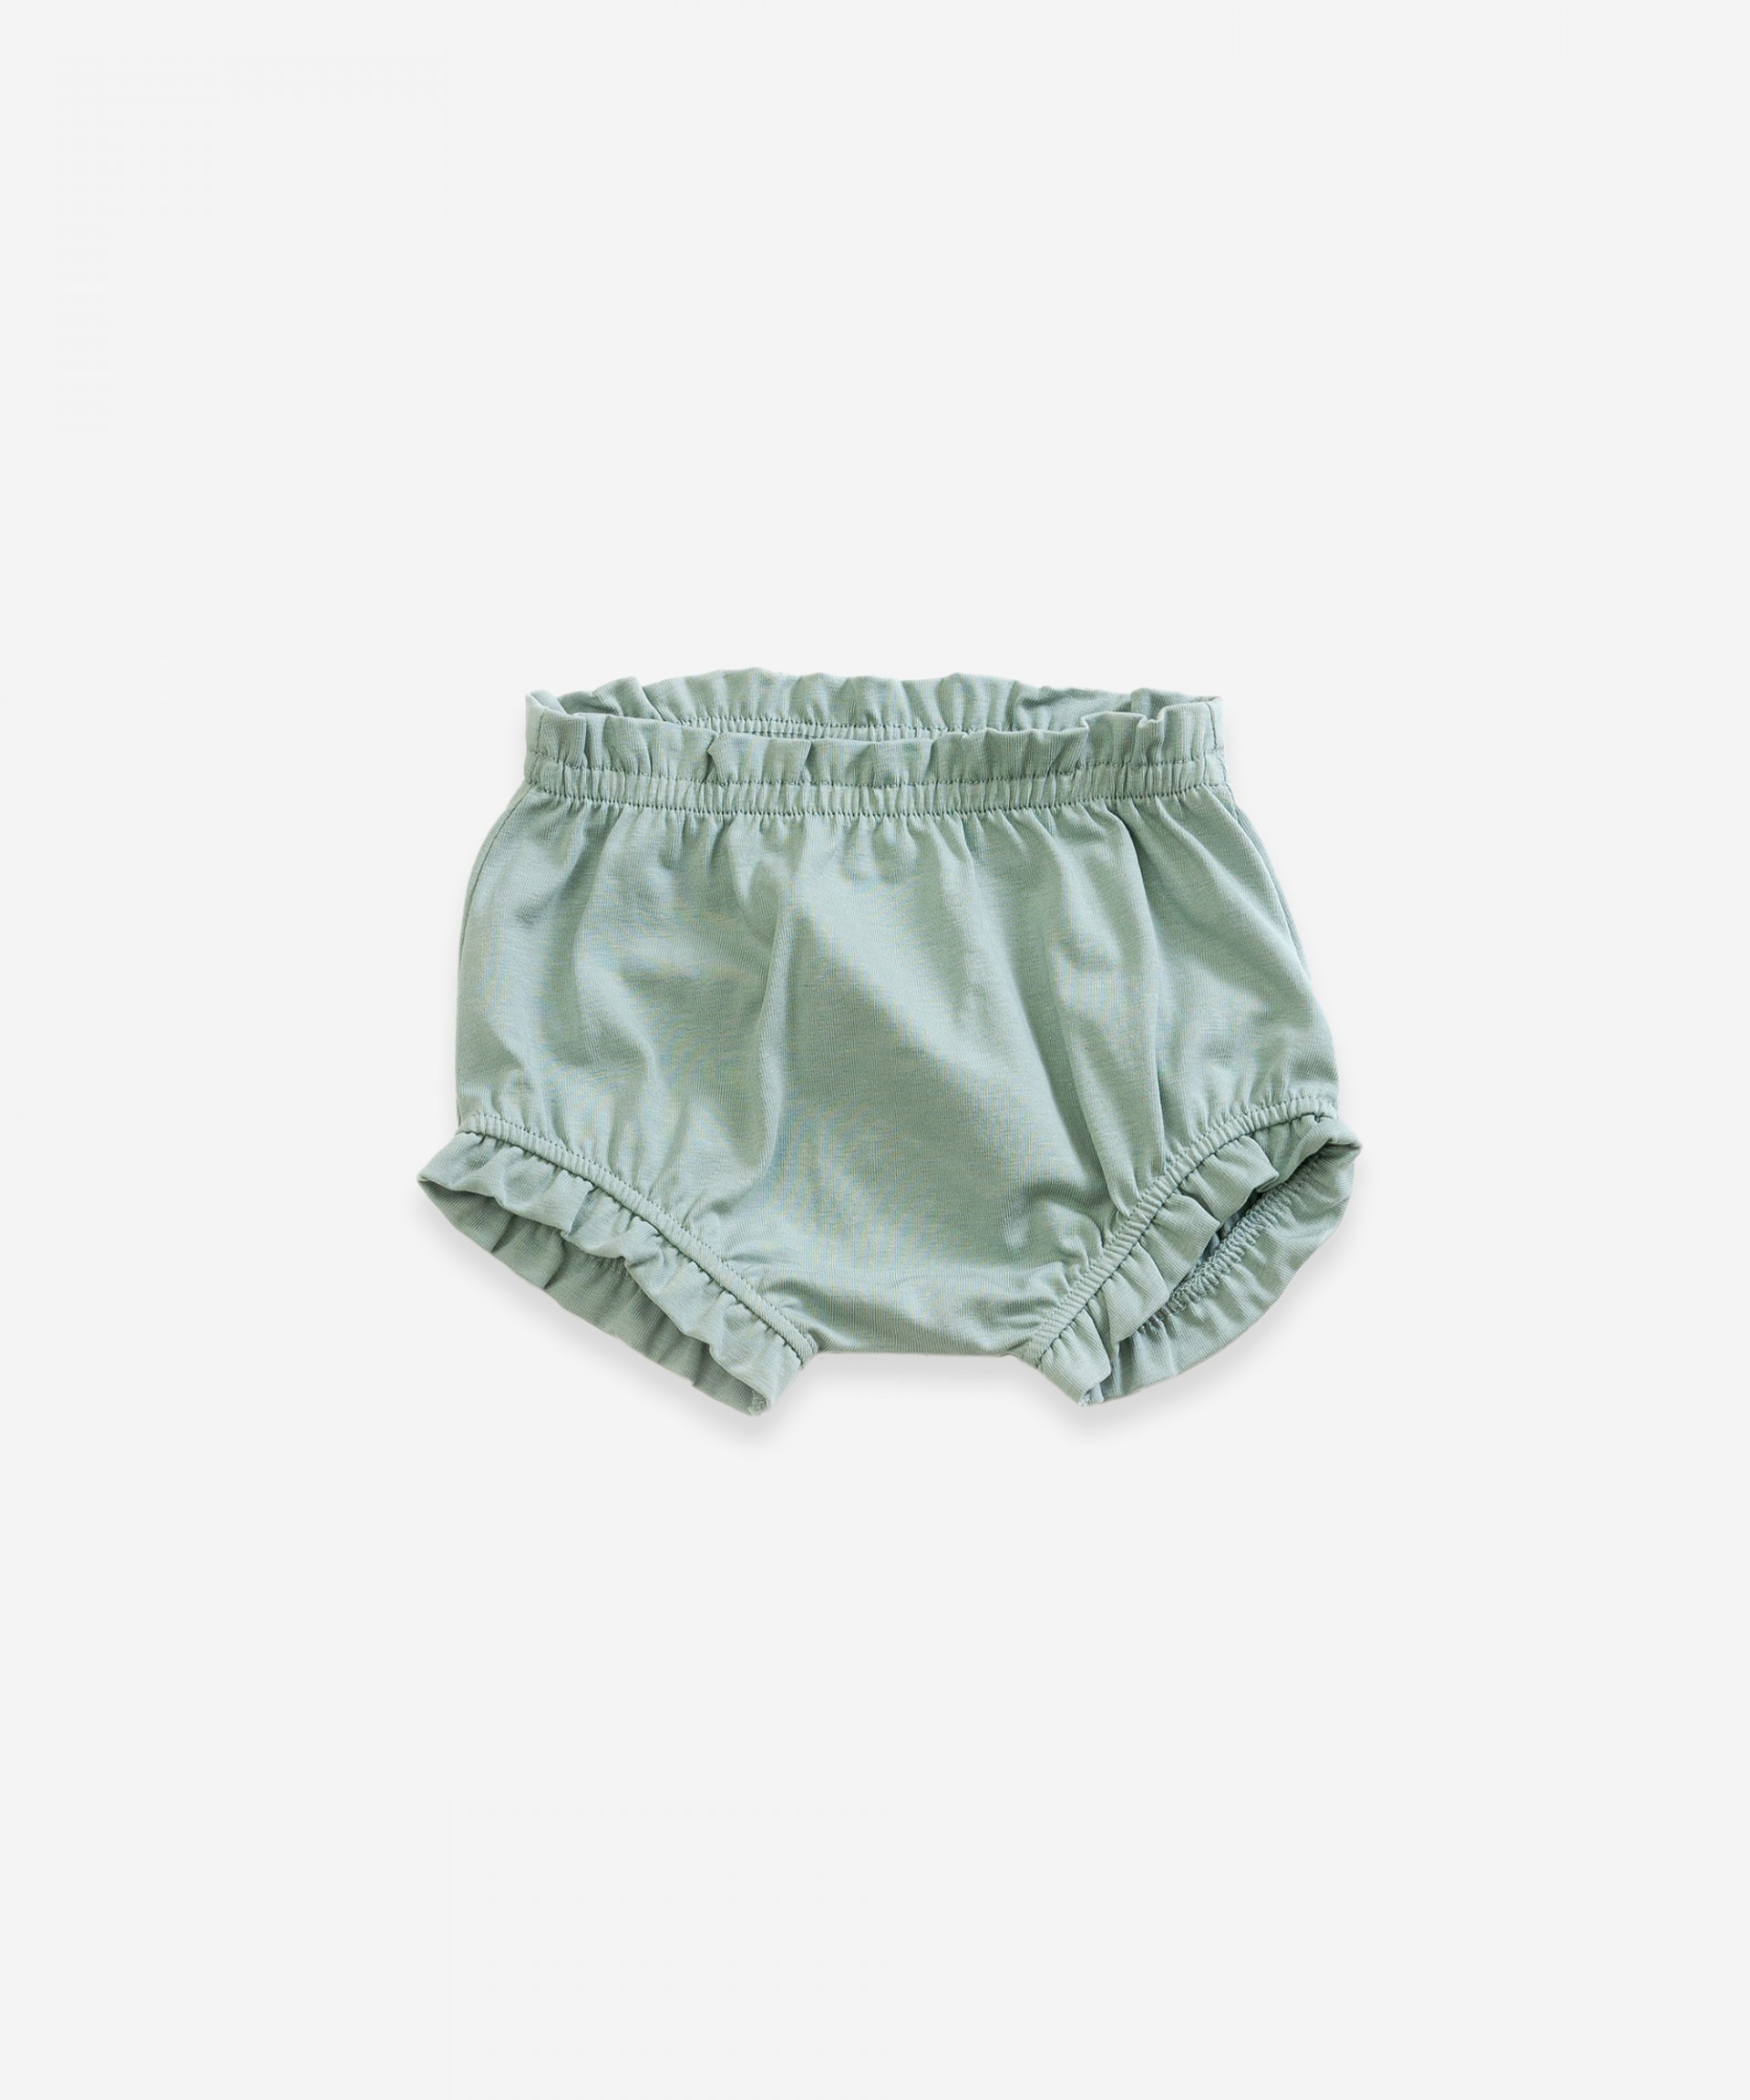 Underwear with elasticated waist | Weaving